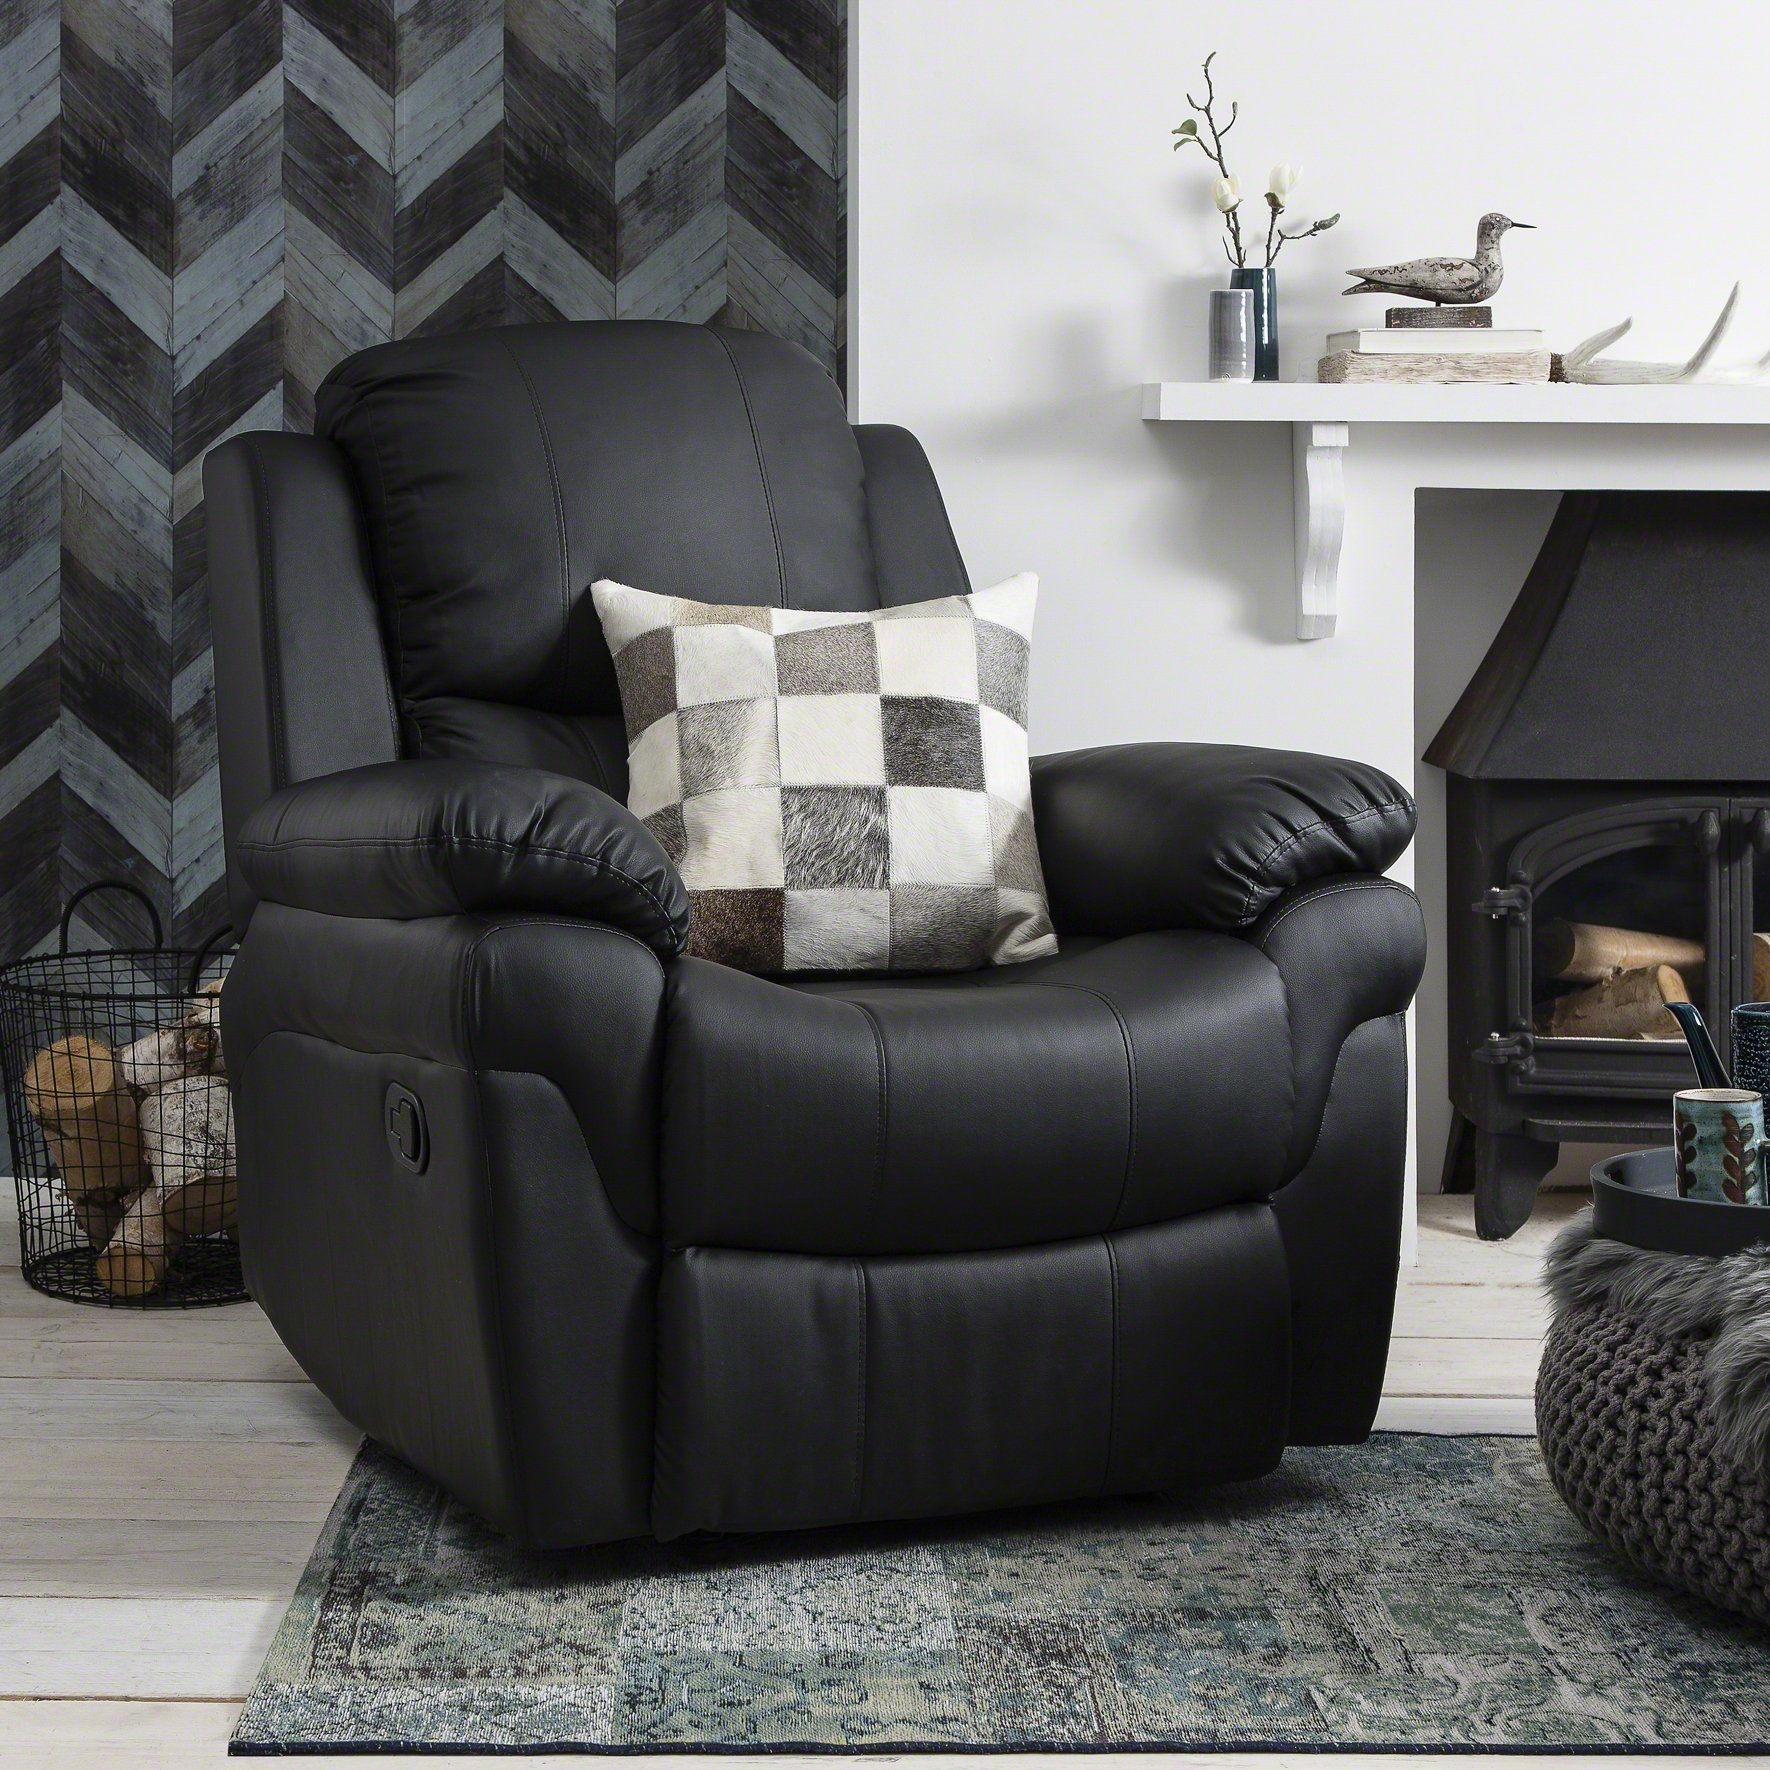 Outstanding Recliner Armchair Black Bonded Leather Pdpeps Interior Chair Design Pdpepsorg